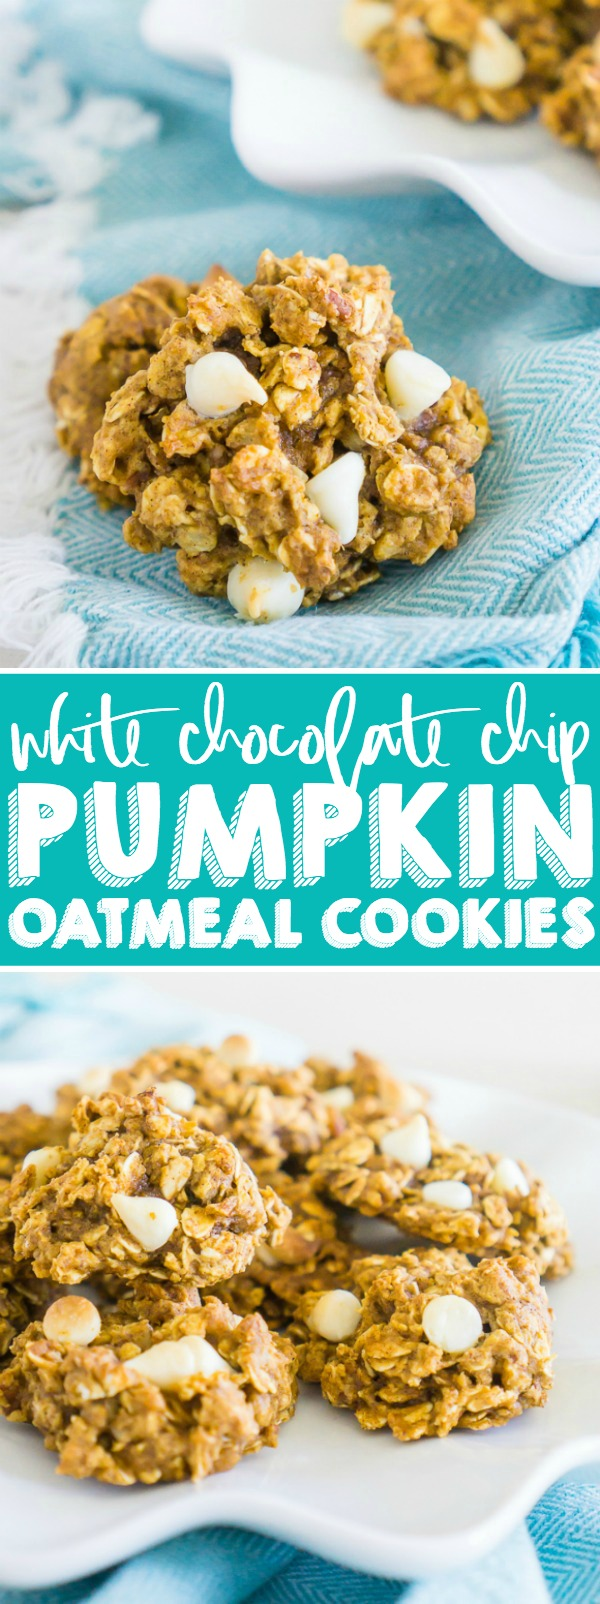 Combine the perfect fall flavors of pumpkin, oatmeal, nutmeg, and cinnamon into deliciousWhite Chocolate Chip Pumpkin Oatmeal Cookies that are so addicting you will want them with your coffee in the morning! It will be one of your new fall cookie favorites! | The Love Nerds #pumpkincookies #thanksgivingdessert